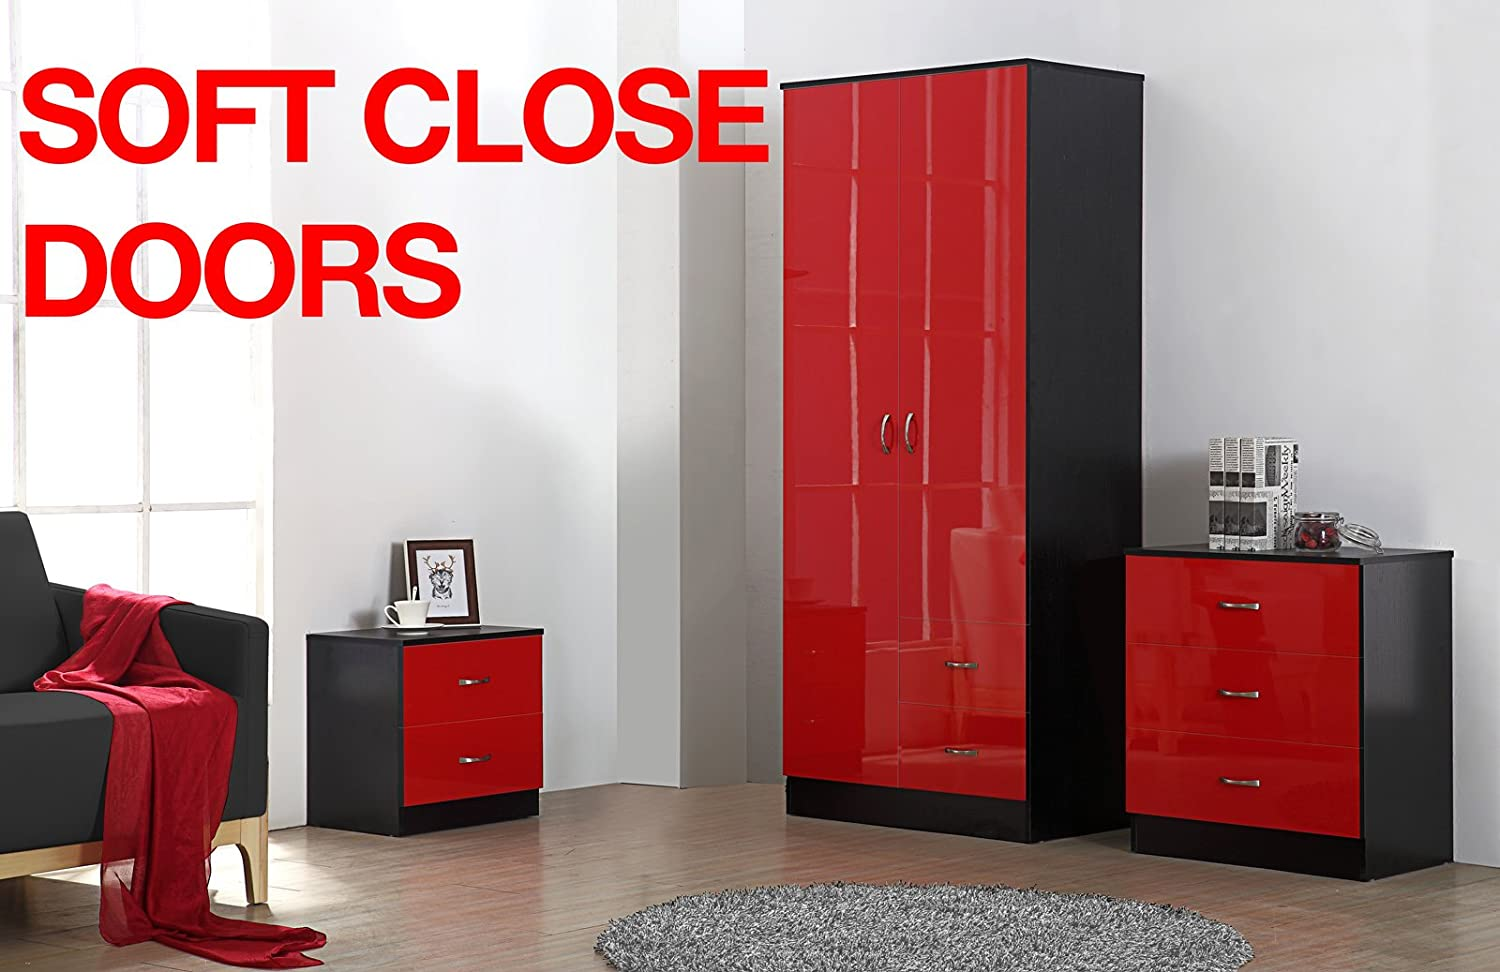 Fairpak Gladini High Gloss 3 Piece DRAWER Bedroom Furniture Set - Includes Wardrobe drawers, 3 Drawer Chest, Bedside Cabinet (Red/Black)